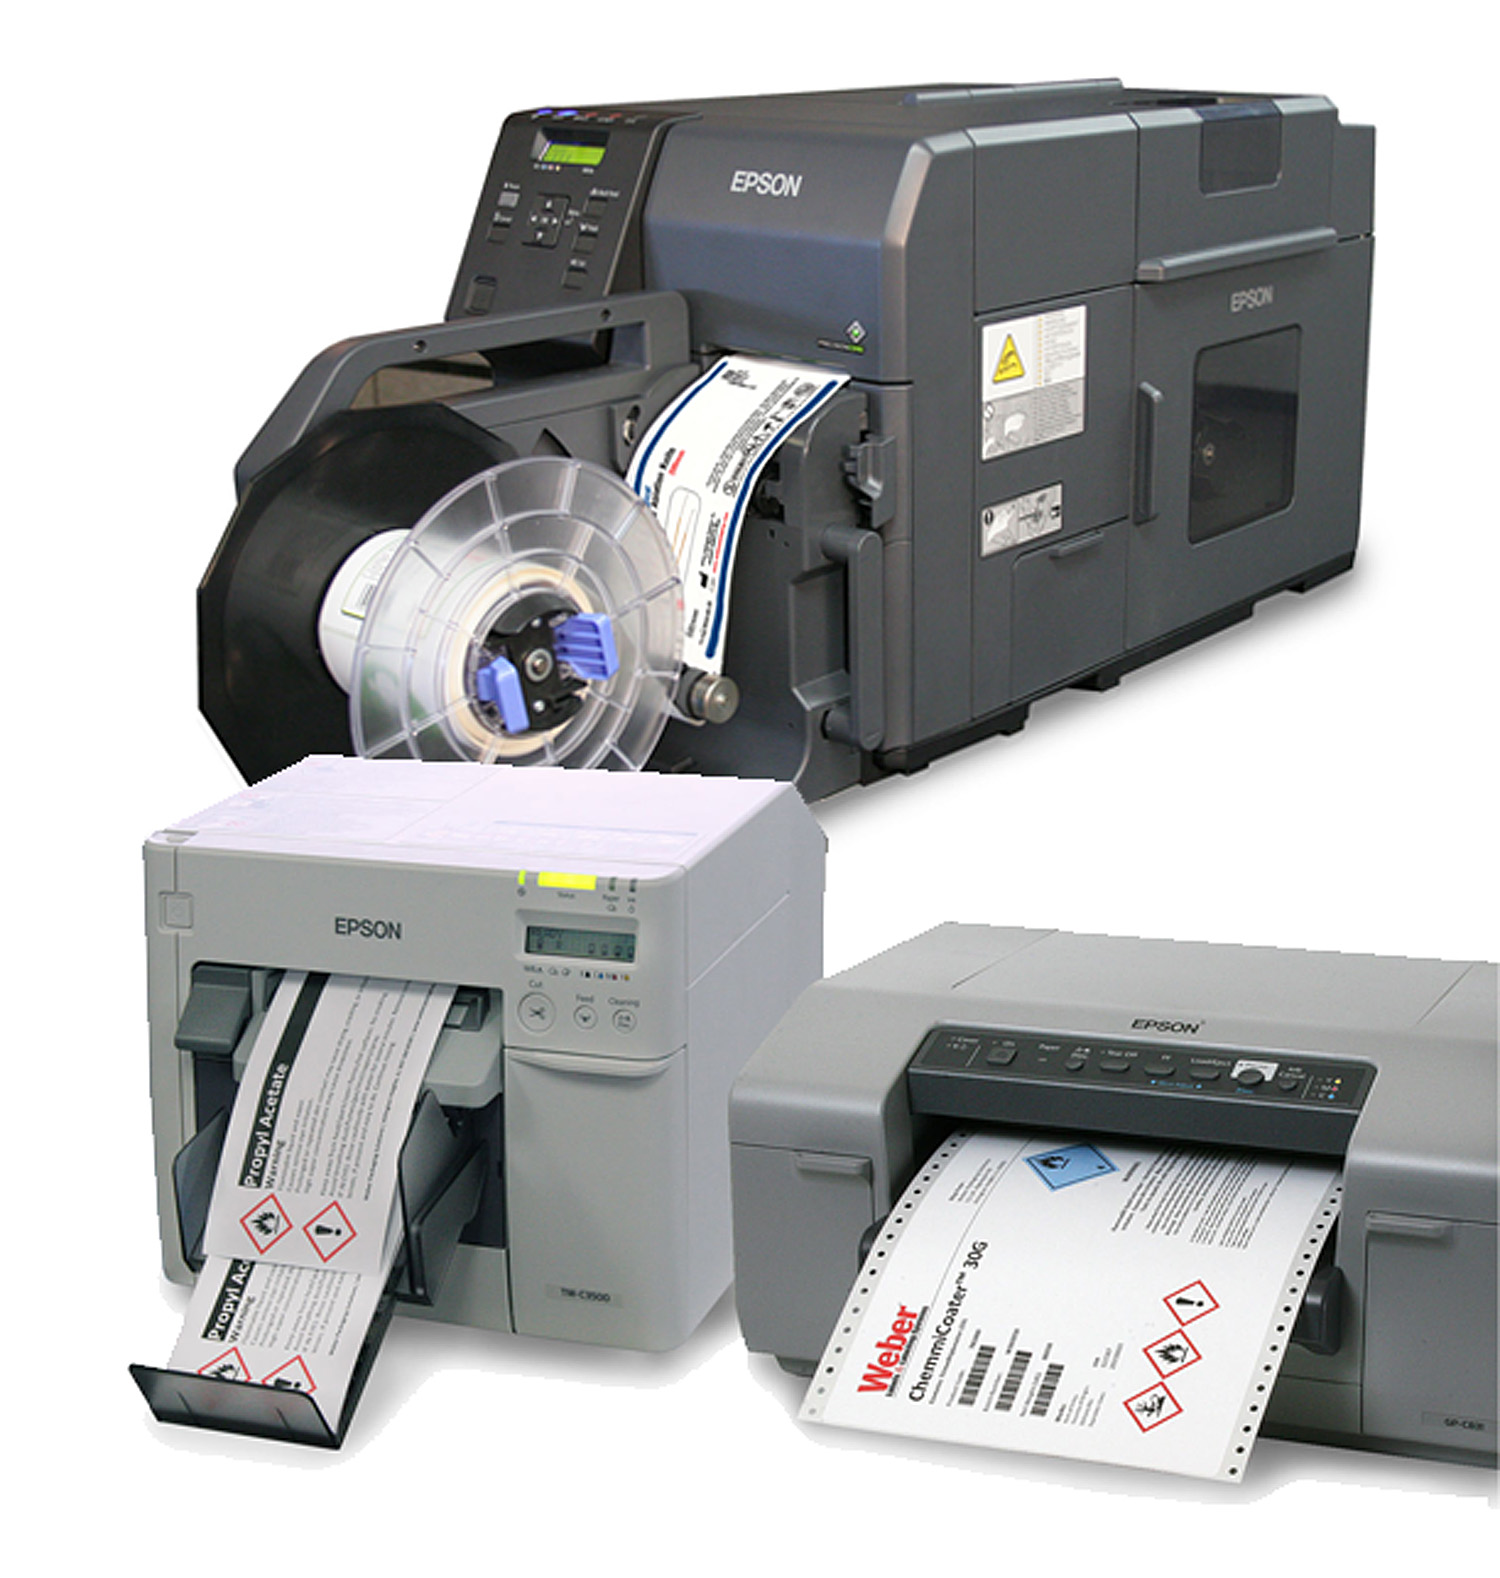 Glossy Epson Ink Jet Labels - Continuous and Pinfeed/Fanfolded